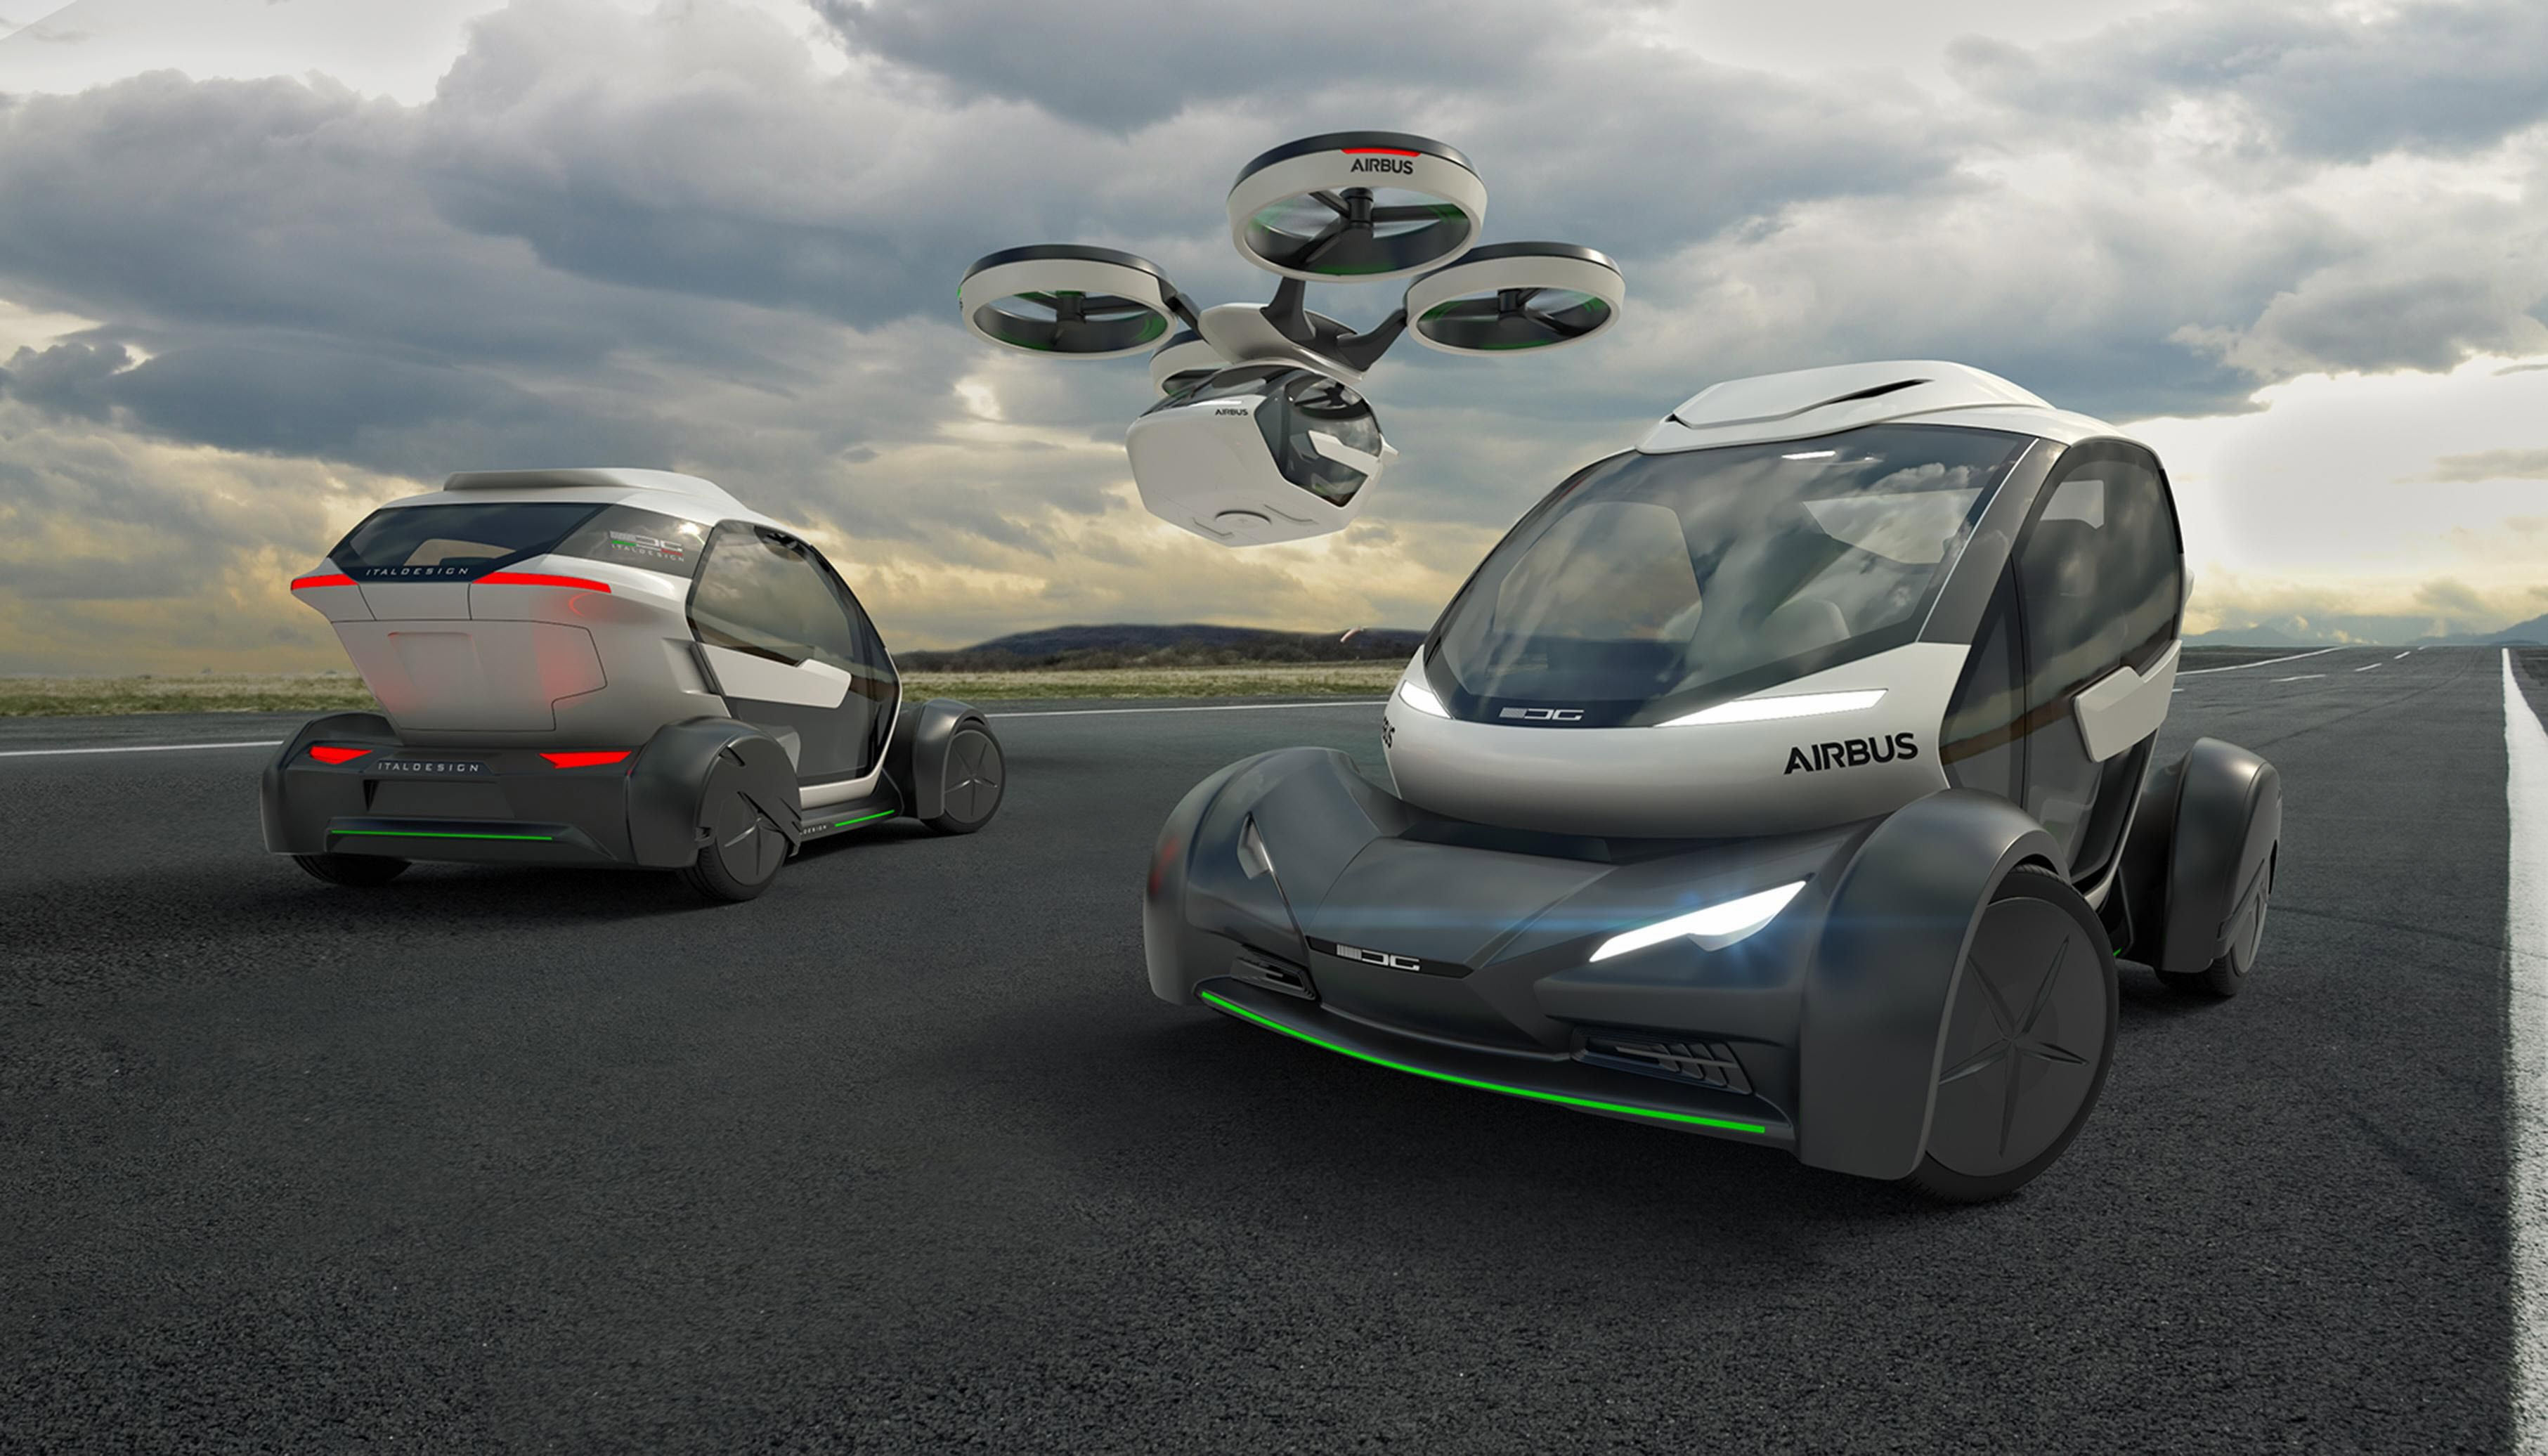 airbus pop.up drone car